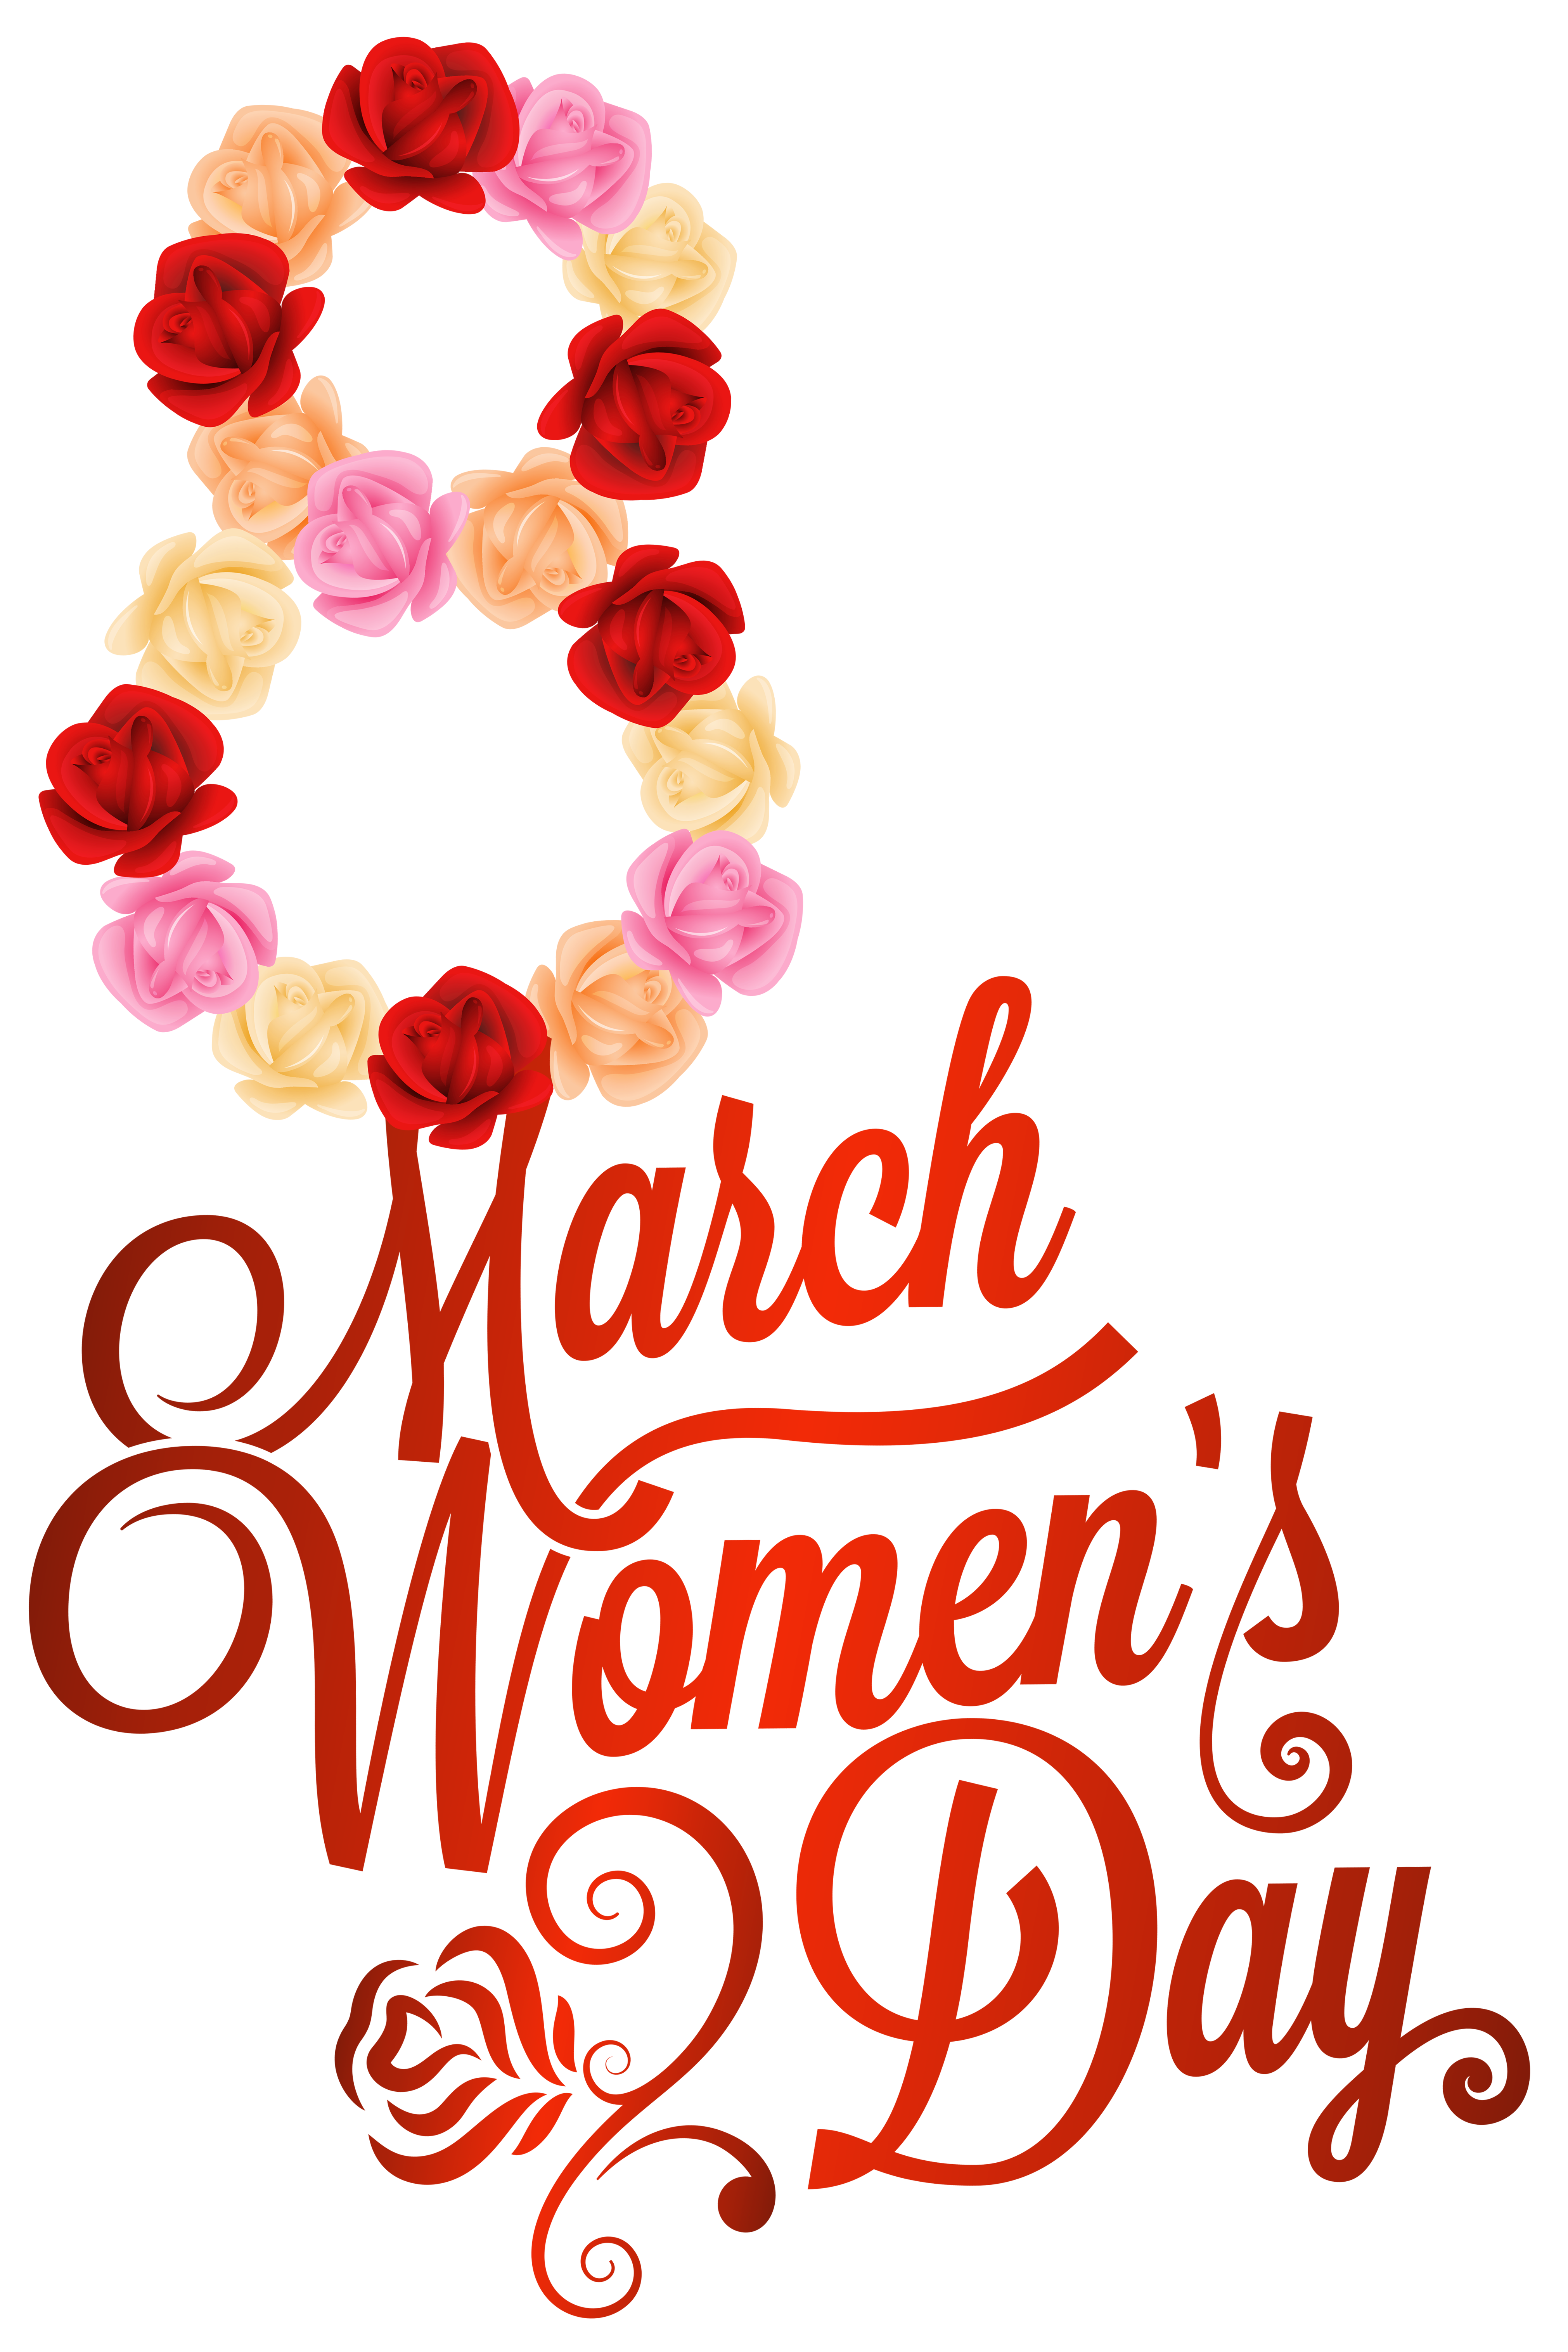 Red 8 March Womens Day PNG Clipart Image.